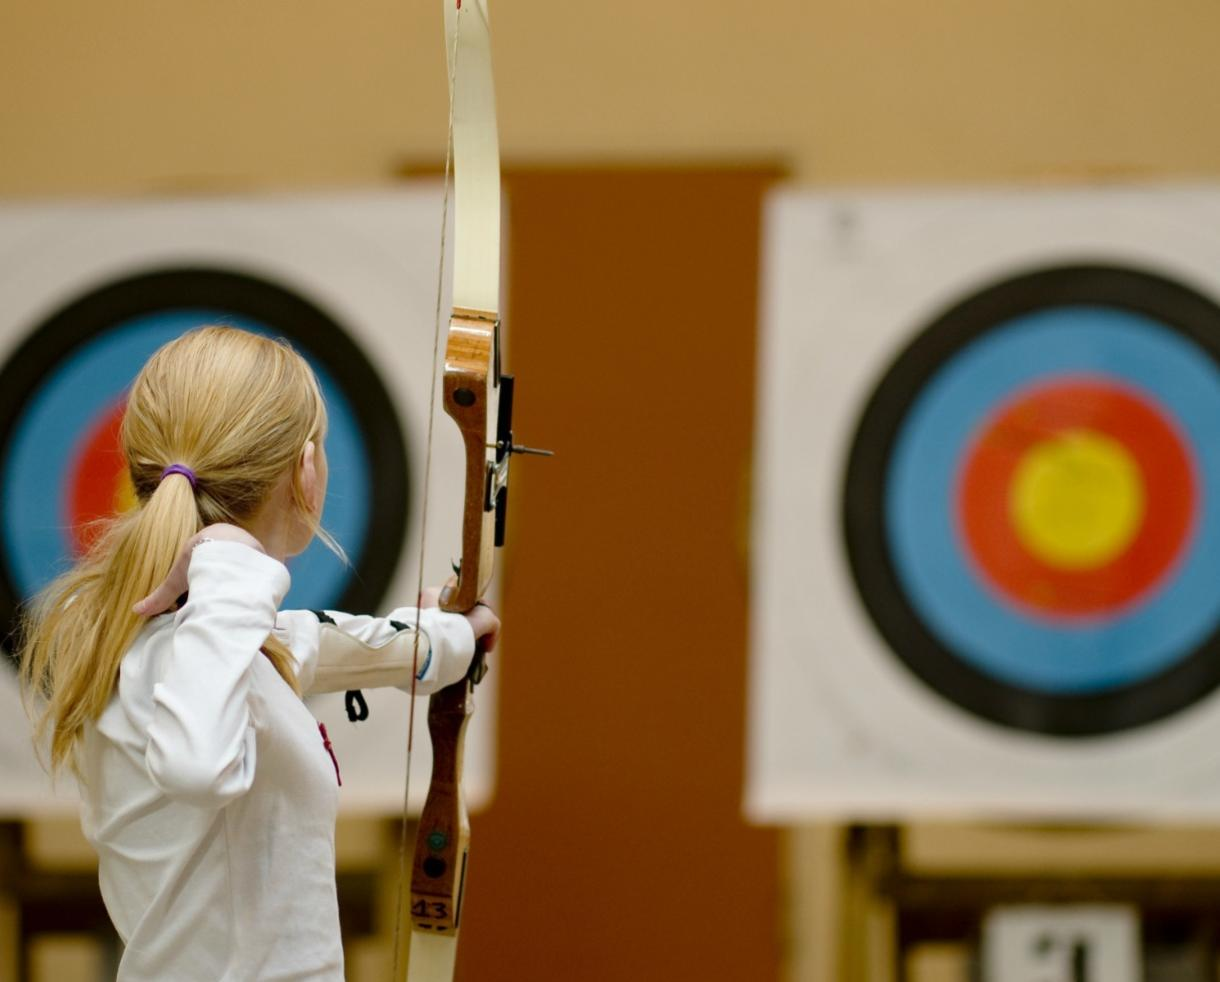 $39 for Two - 1 Hour Archery Sessions for Ages 7 and Up at NEWLY OPENED Invicta Sports in Gaithersburg (48% Off)